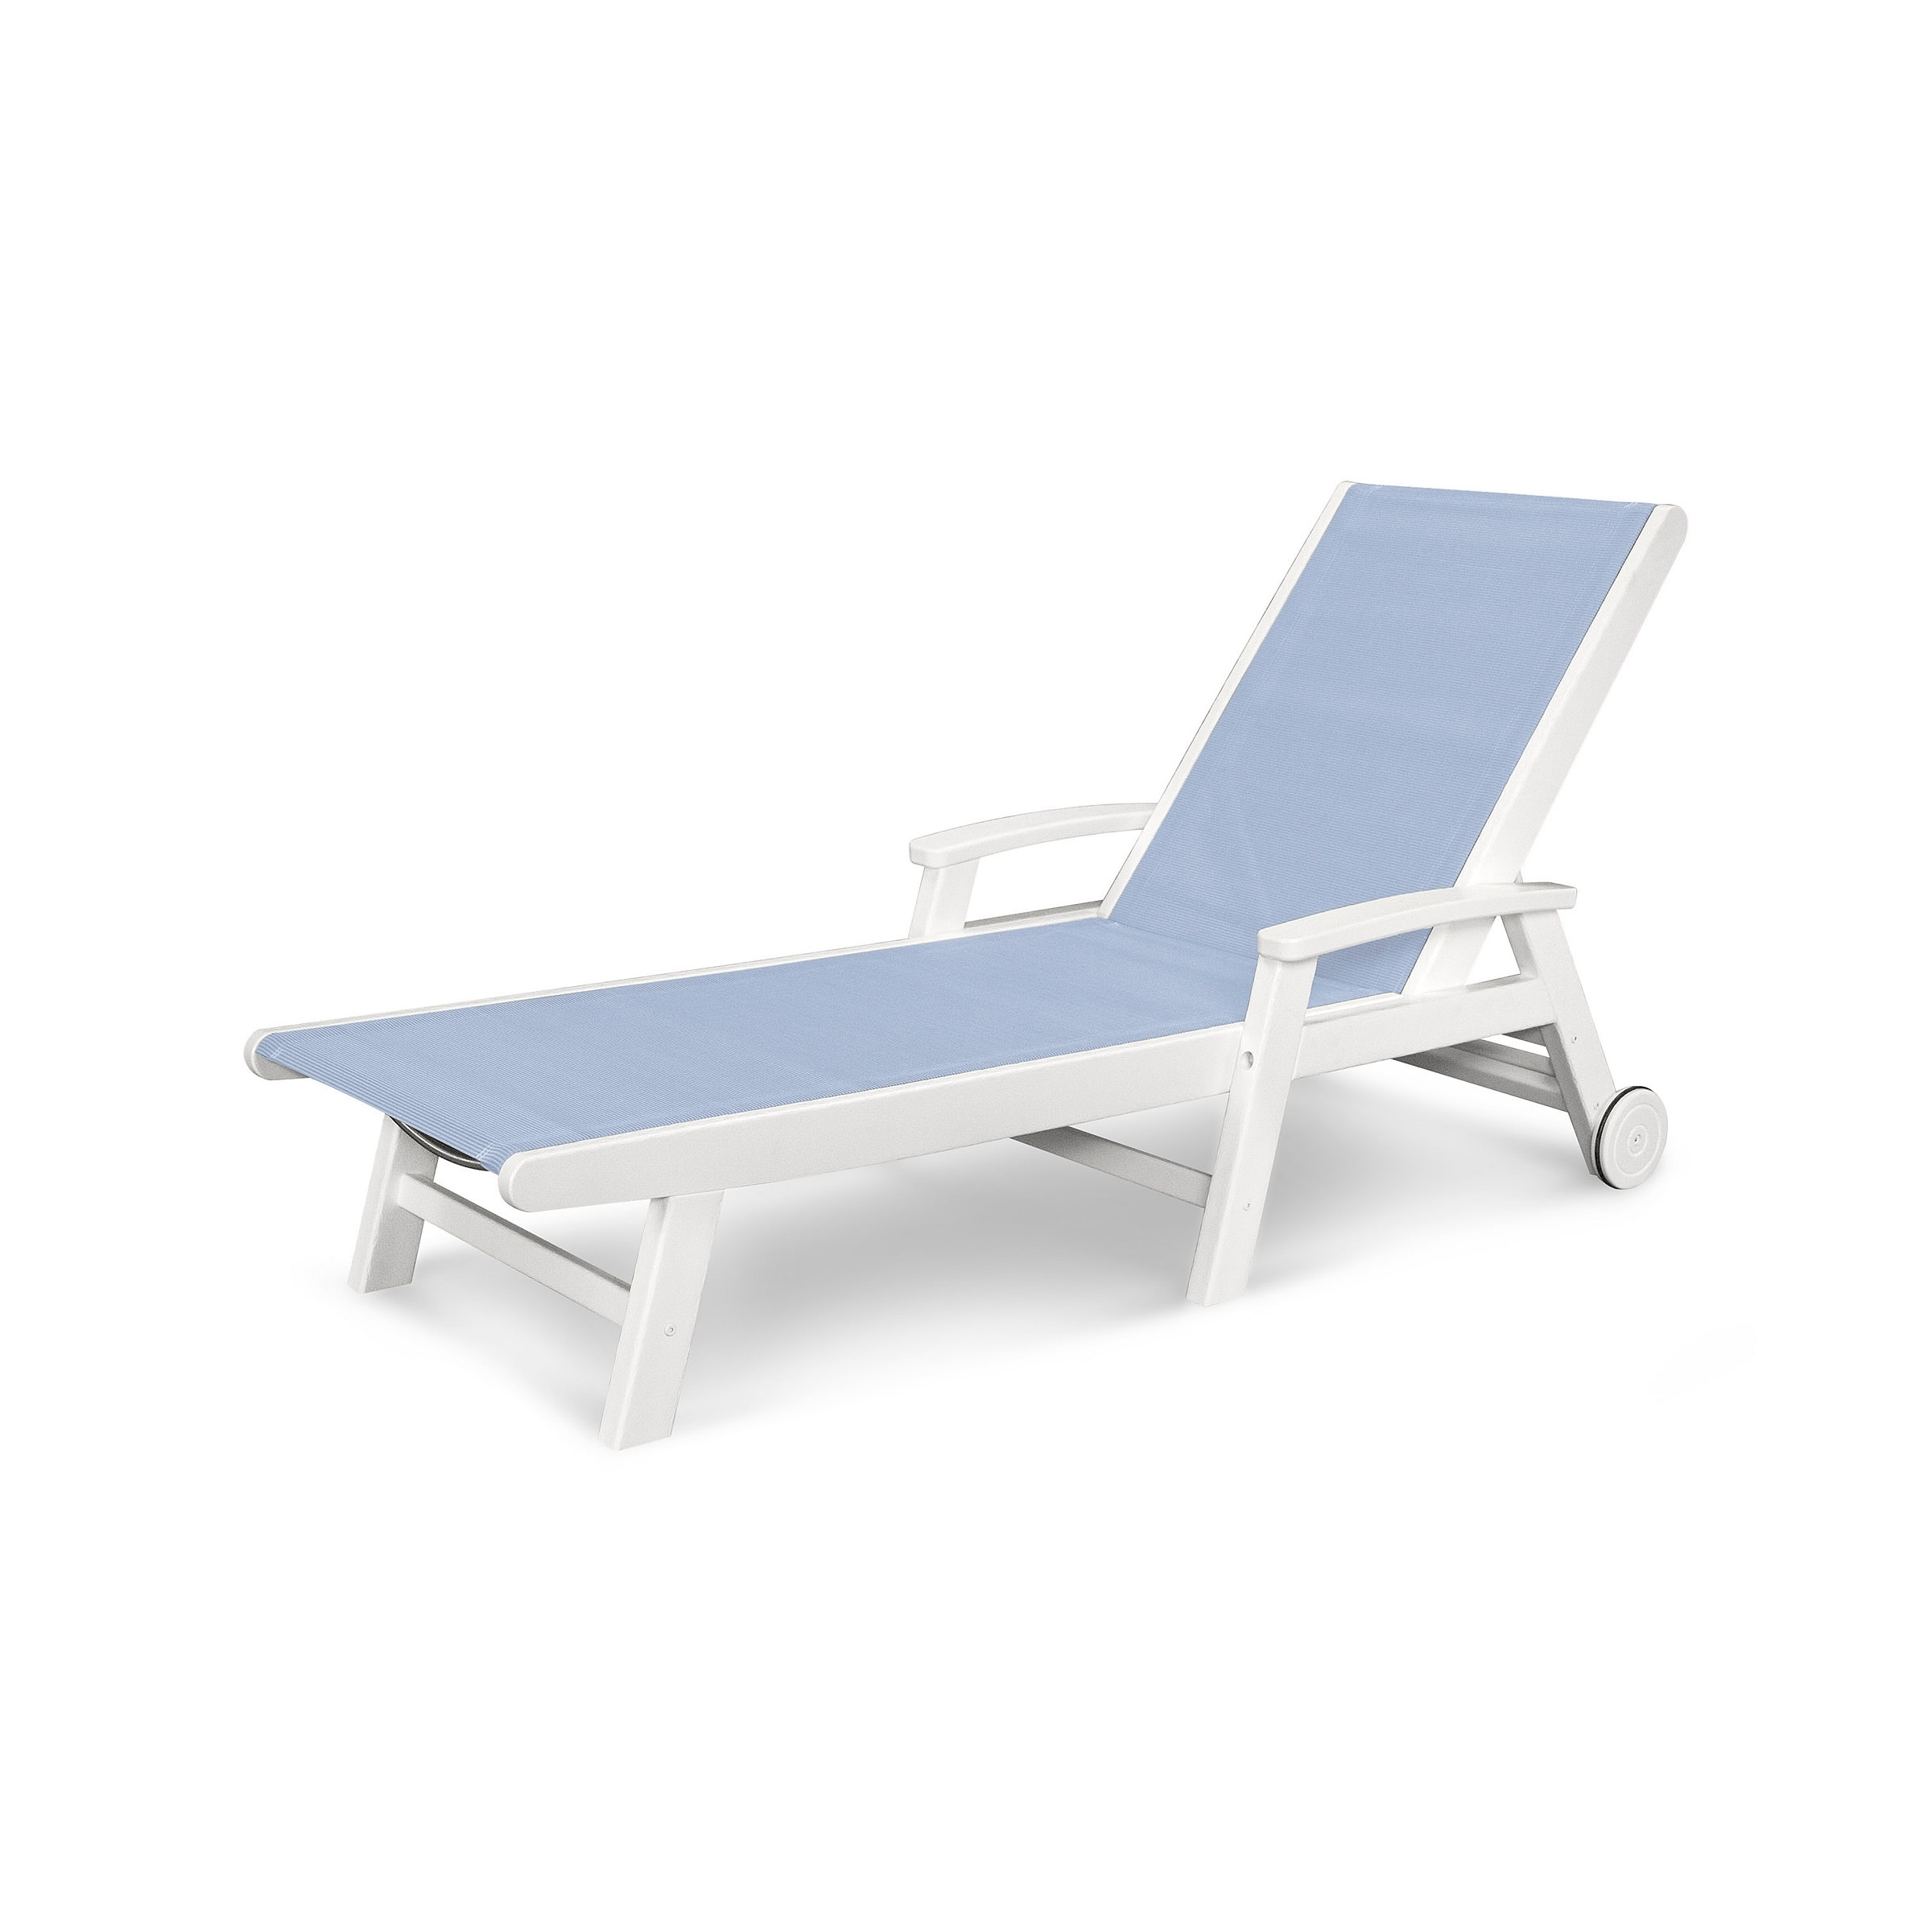 Most Current Sling Chaise Lounge Chairs For Outdoor Regarding Polywood Furniture (View 5 of 15)